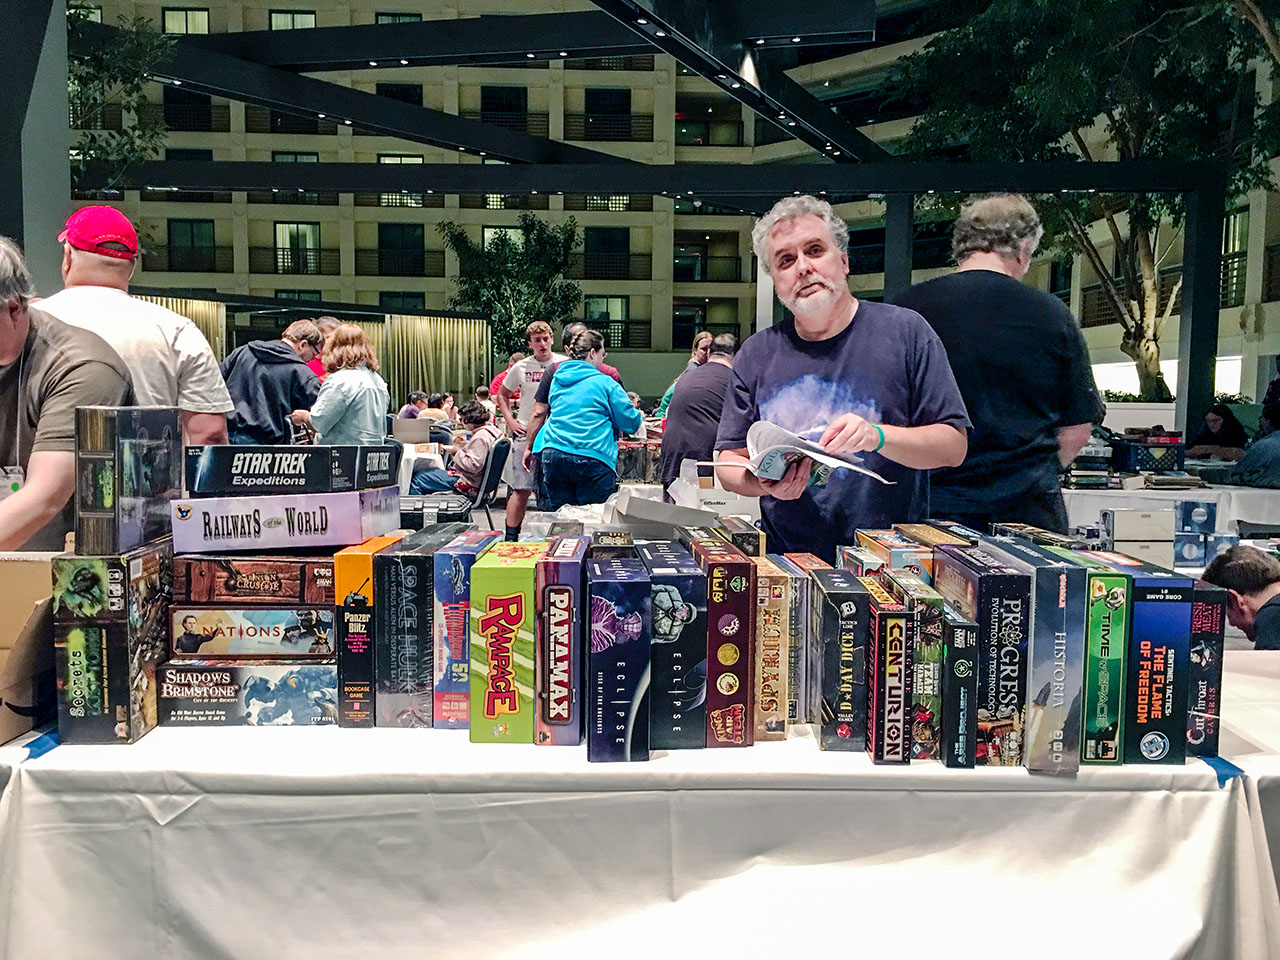 tabletop gaming at kublacon an essay in pictures  new game demos constitute another rite of passage both game resellers and game companies run demo games many publishers give games and swag to